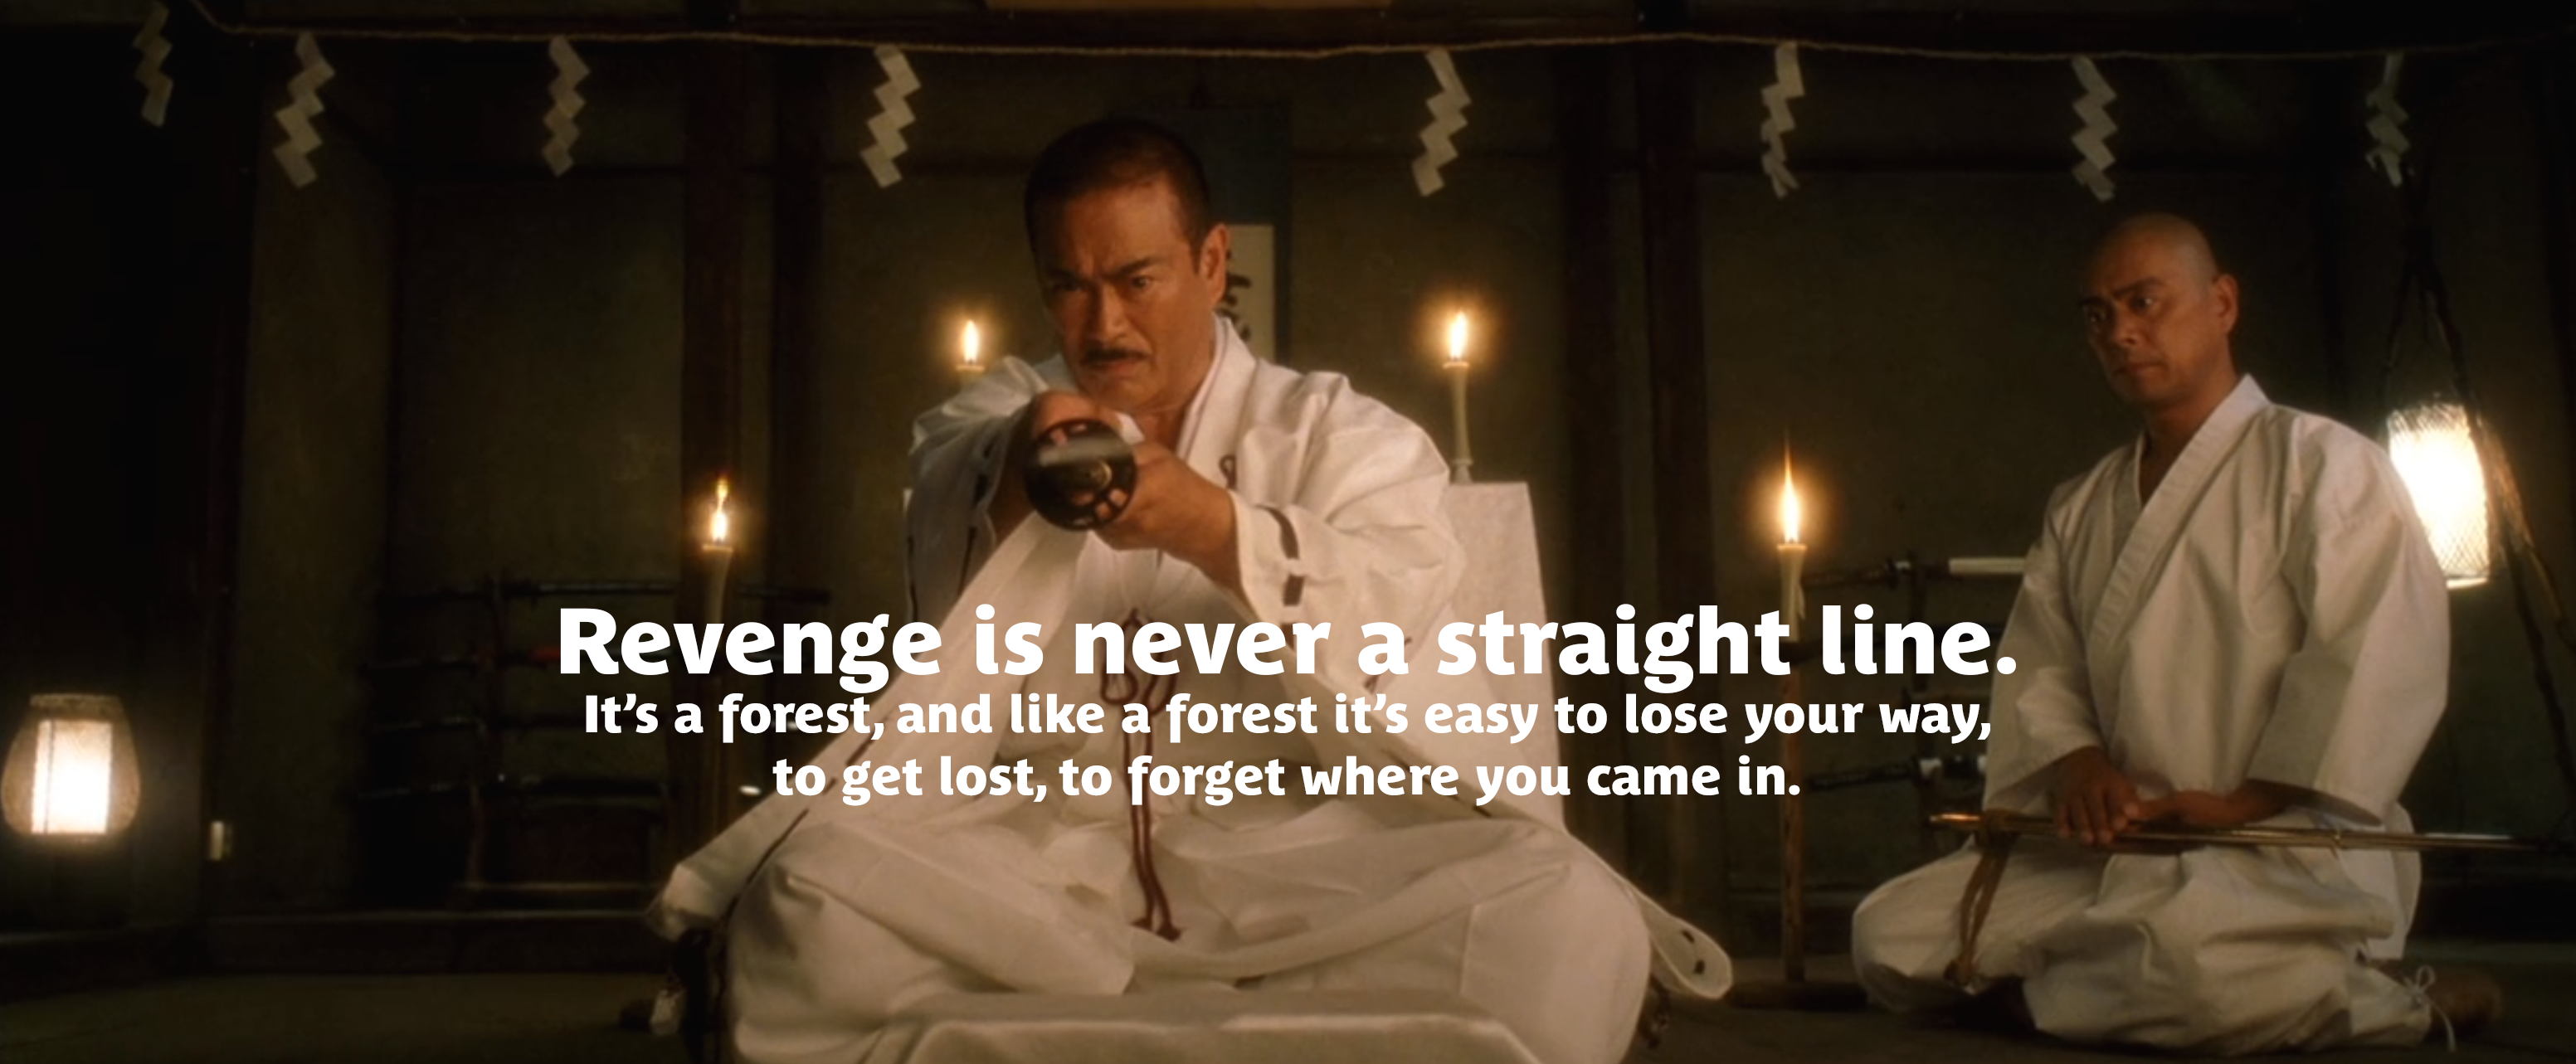 """Revenge is never a straight line"" – Hattori Hanzō [3105×1283]"